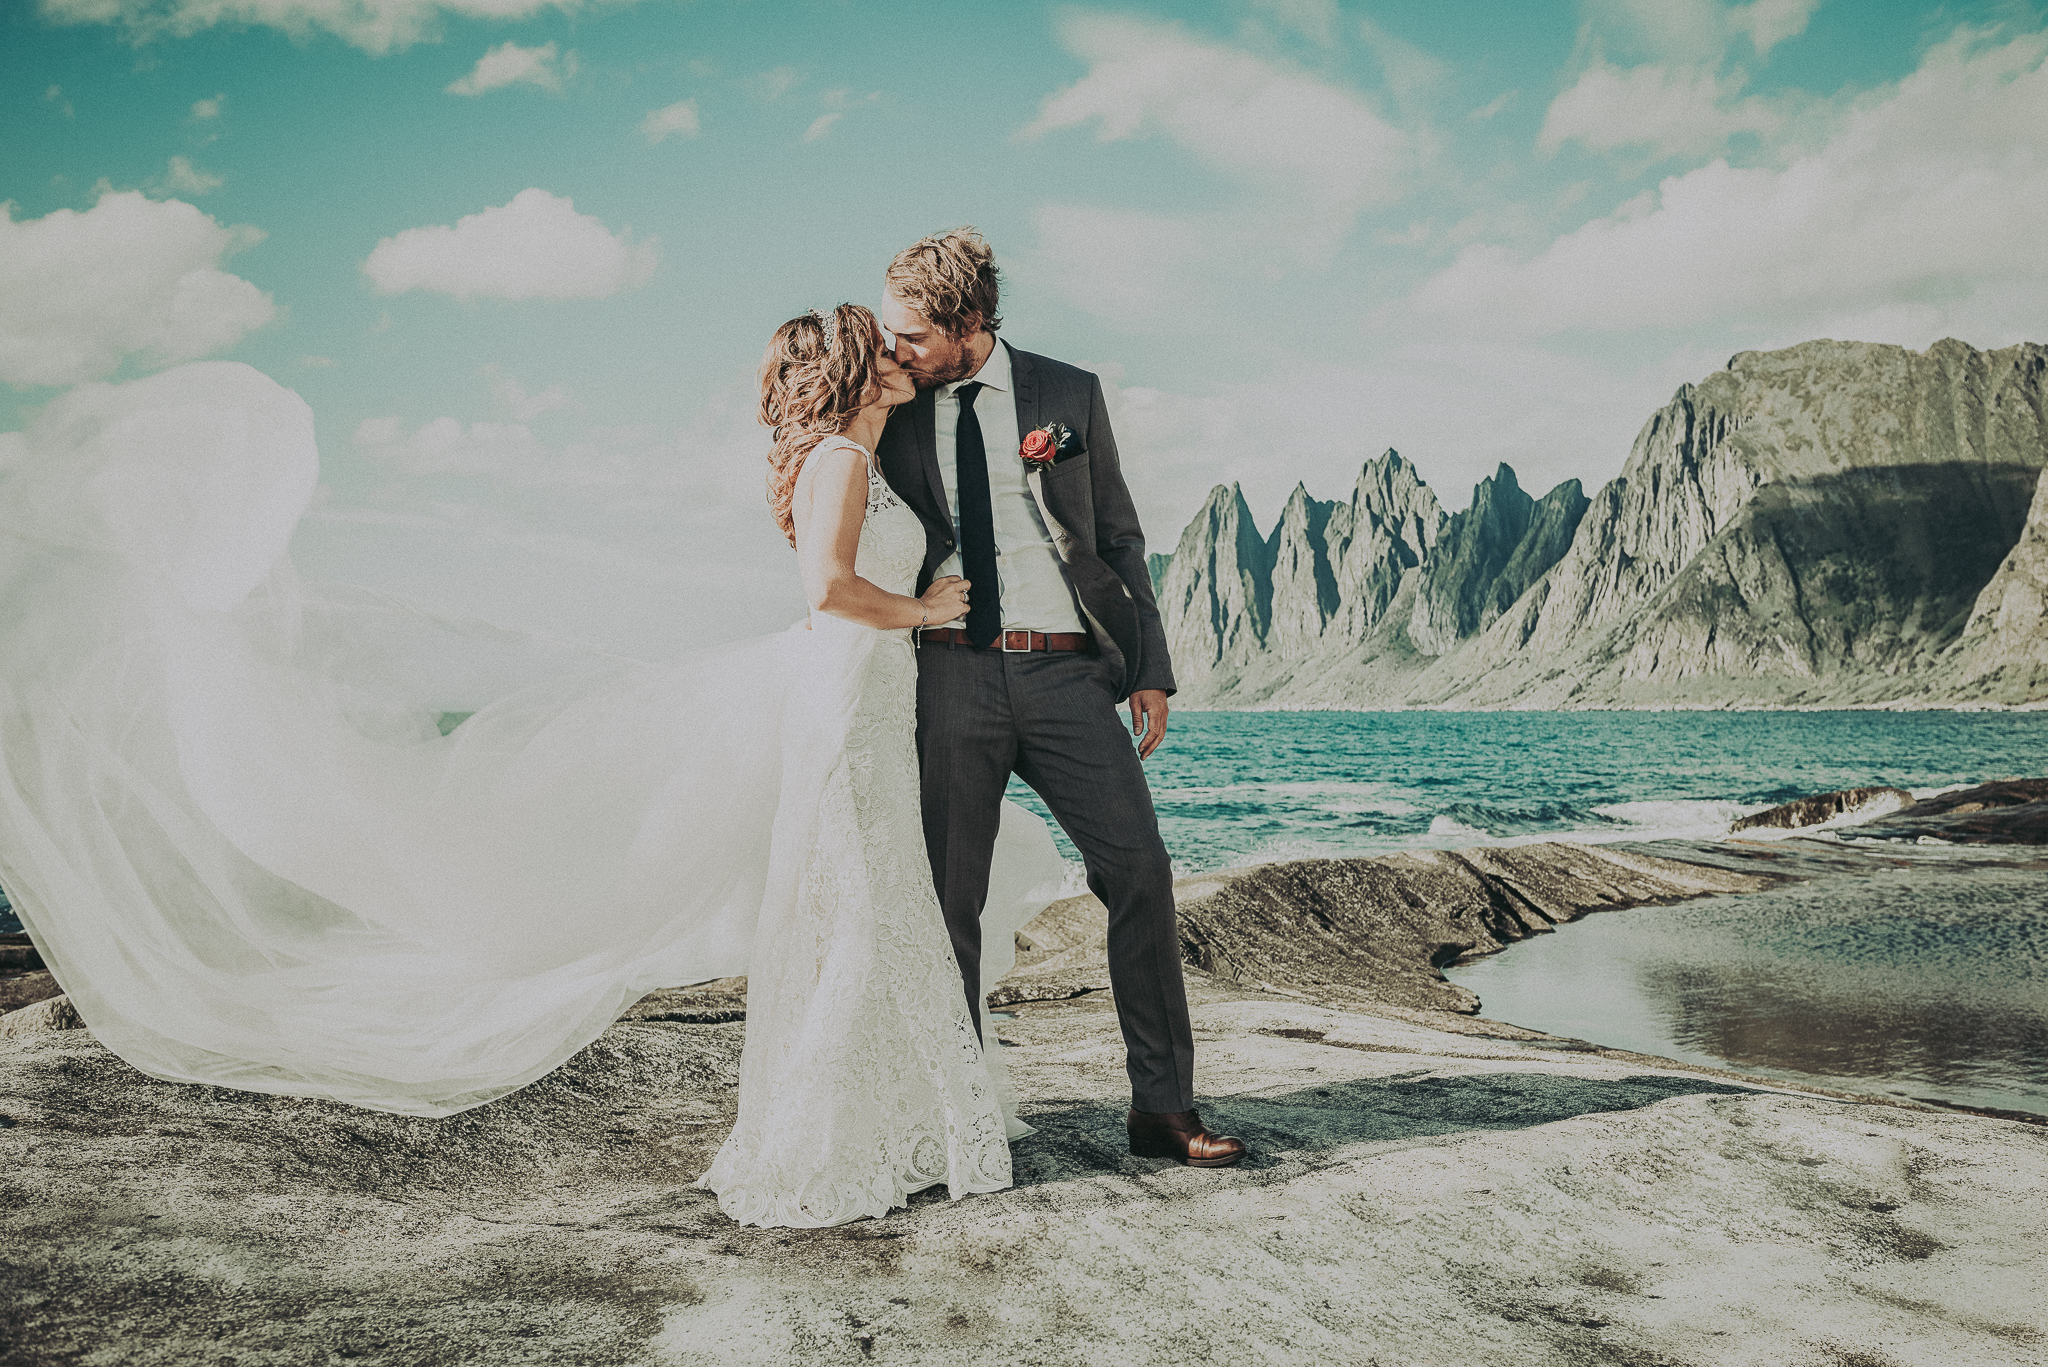 Wedding packages - We offer a range of pre made wedding packages, as well as custom packages tailored especially for you. Use the contact form to get a quote on our custom packages.